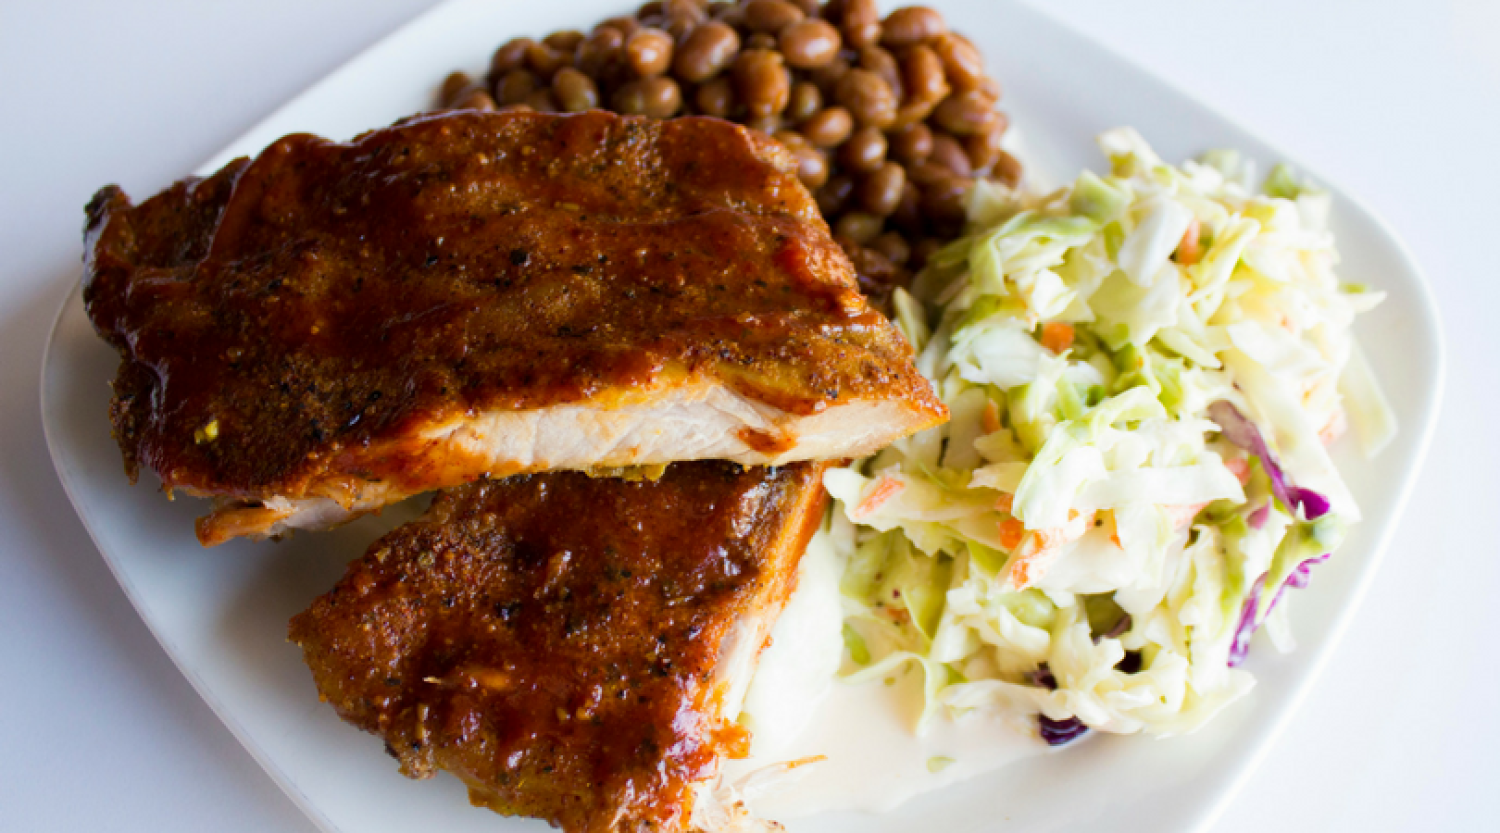 Grilled pork ribs, coleslaw, baked beans